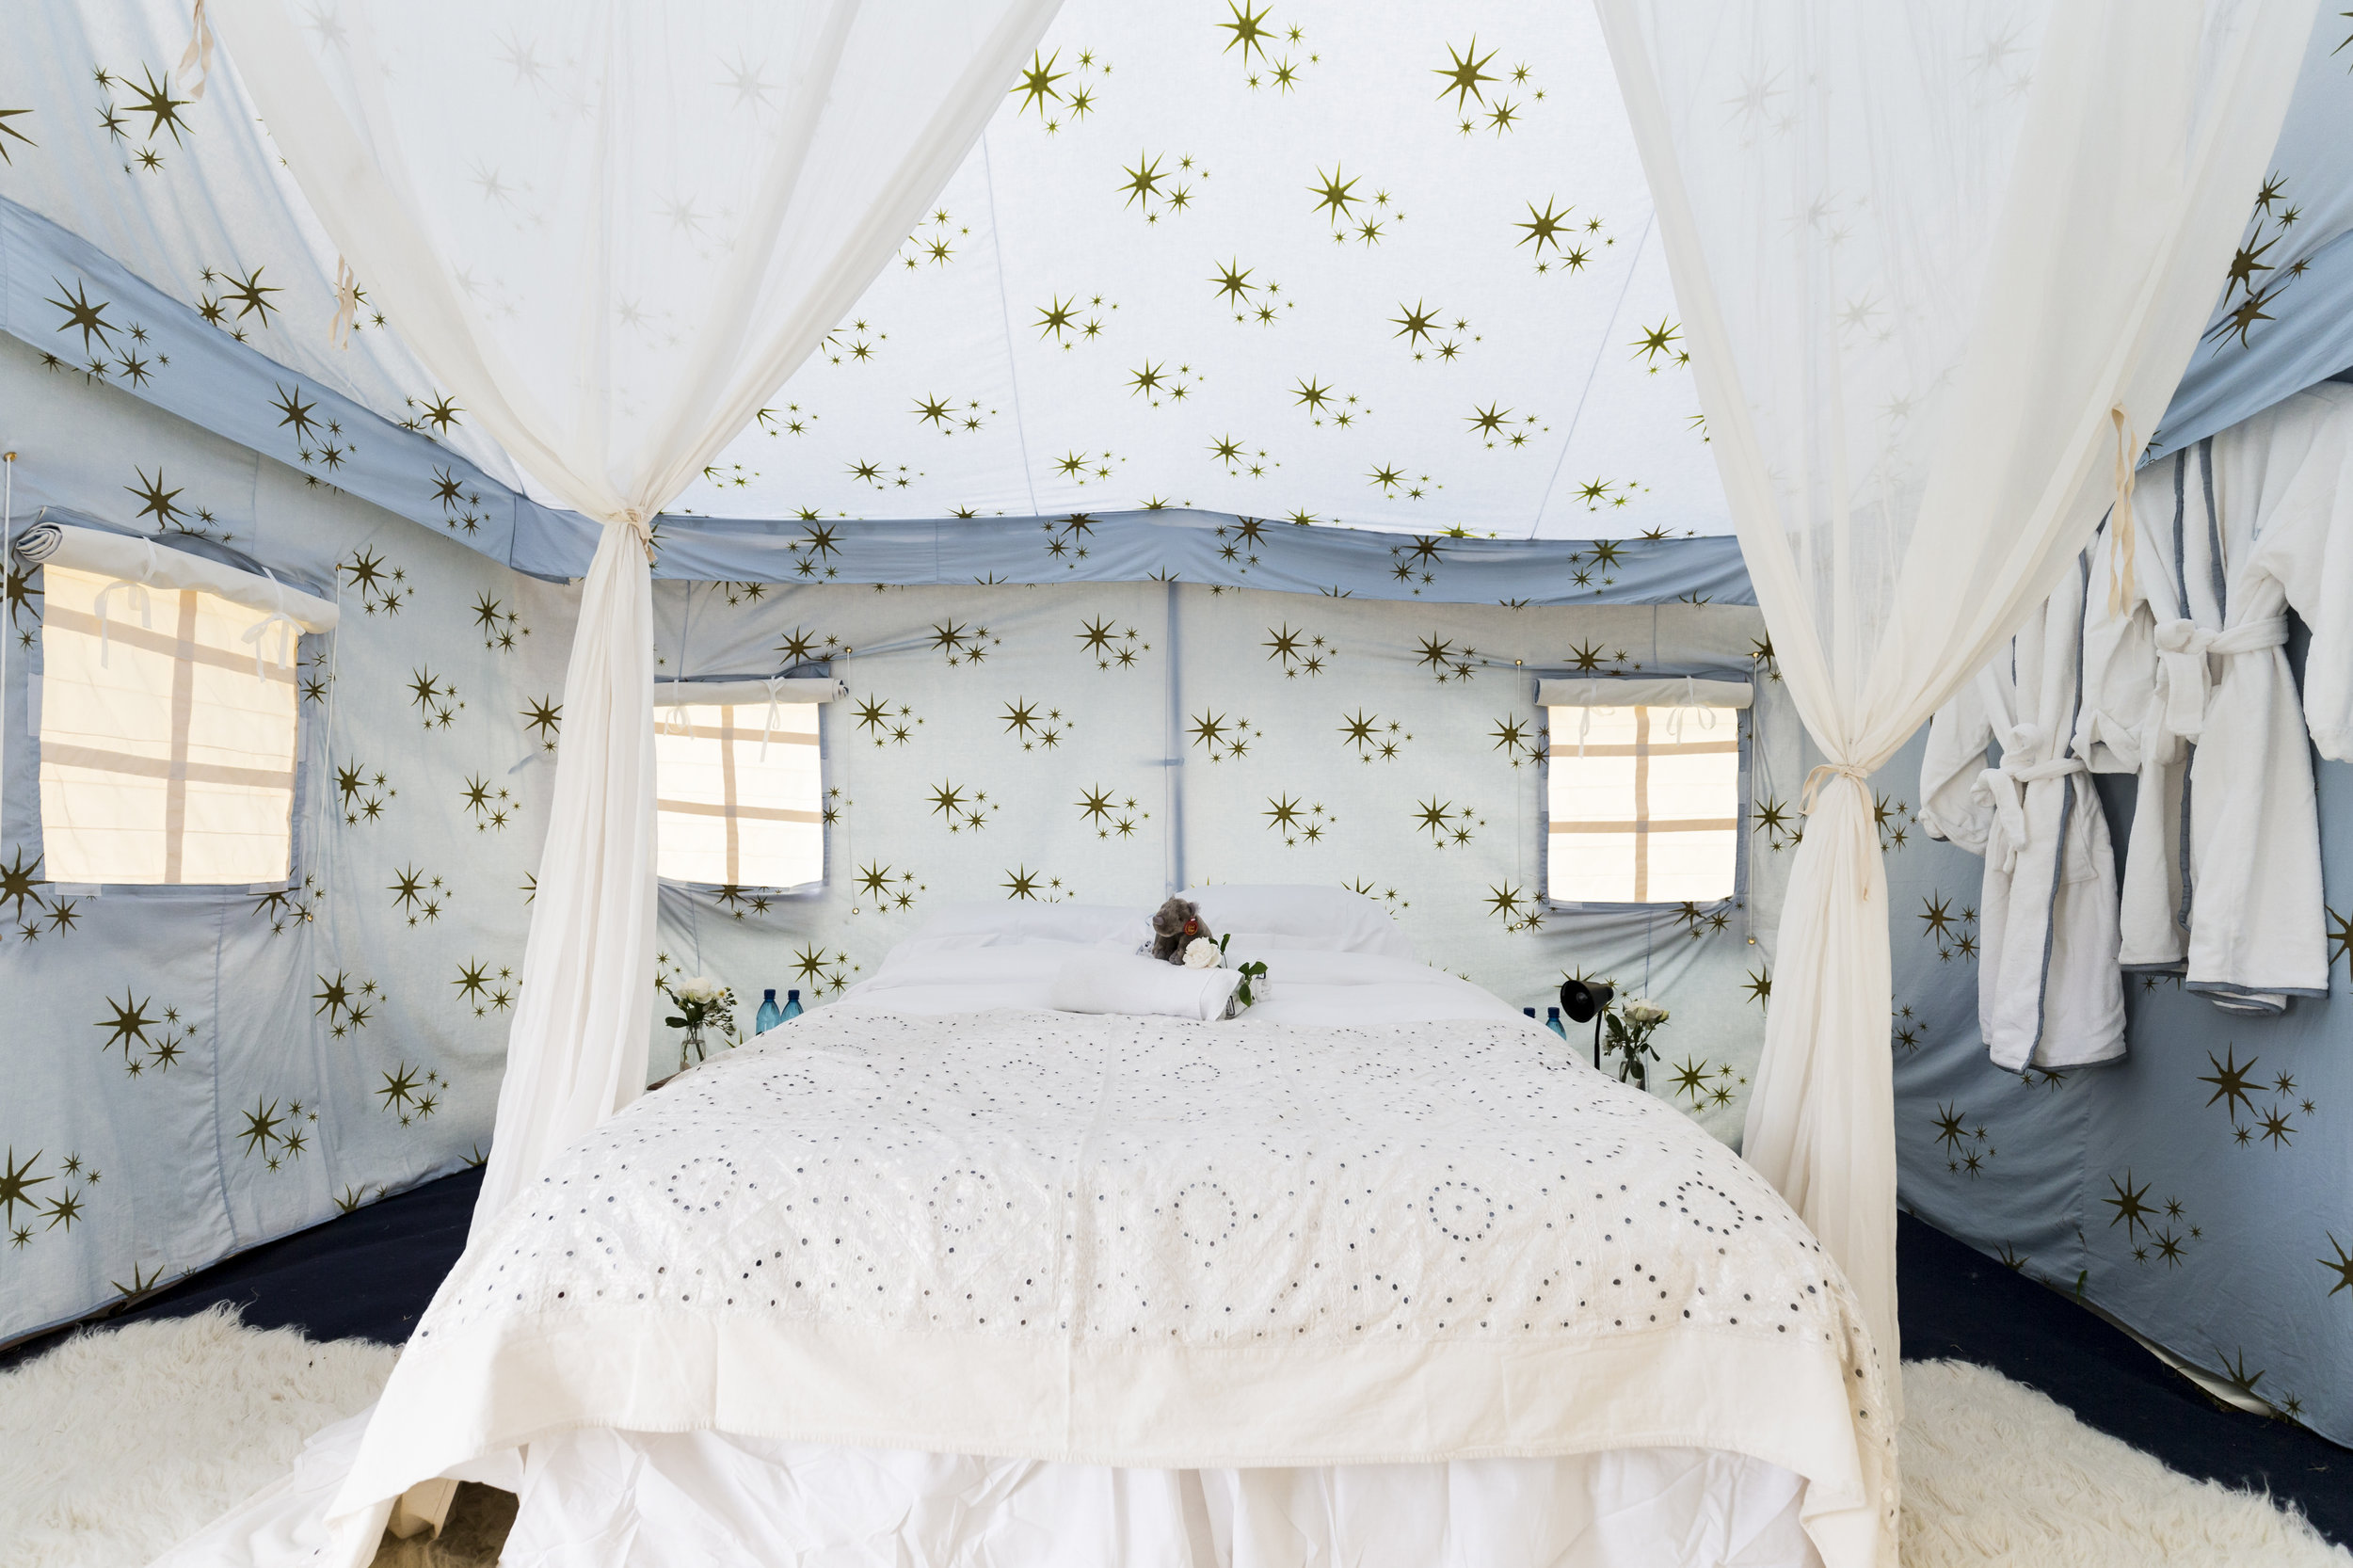 Copy of Inside tent - bed.jpg